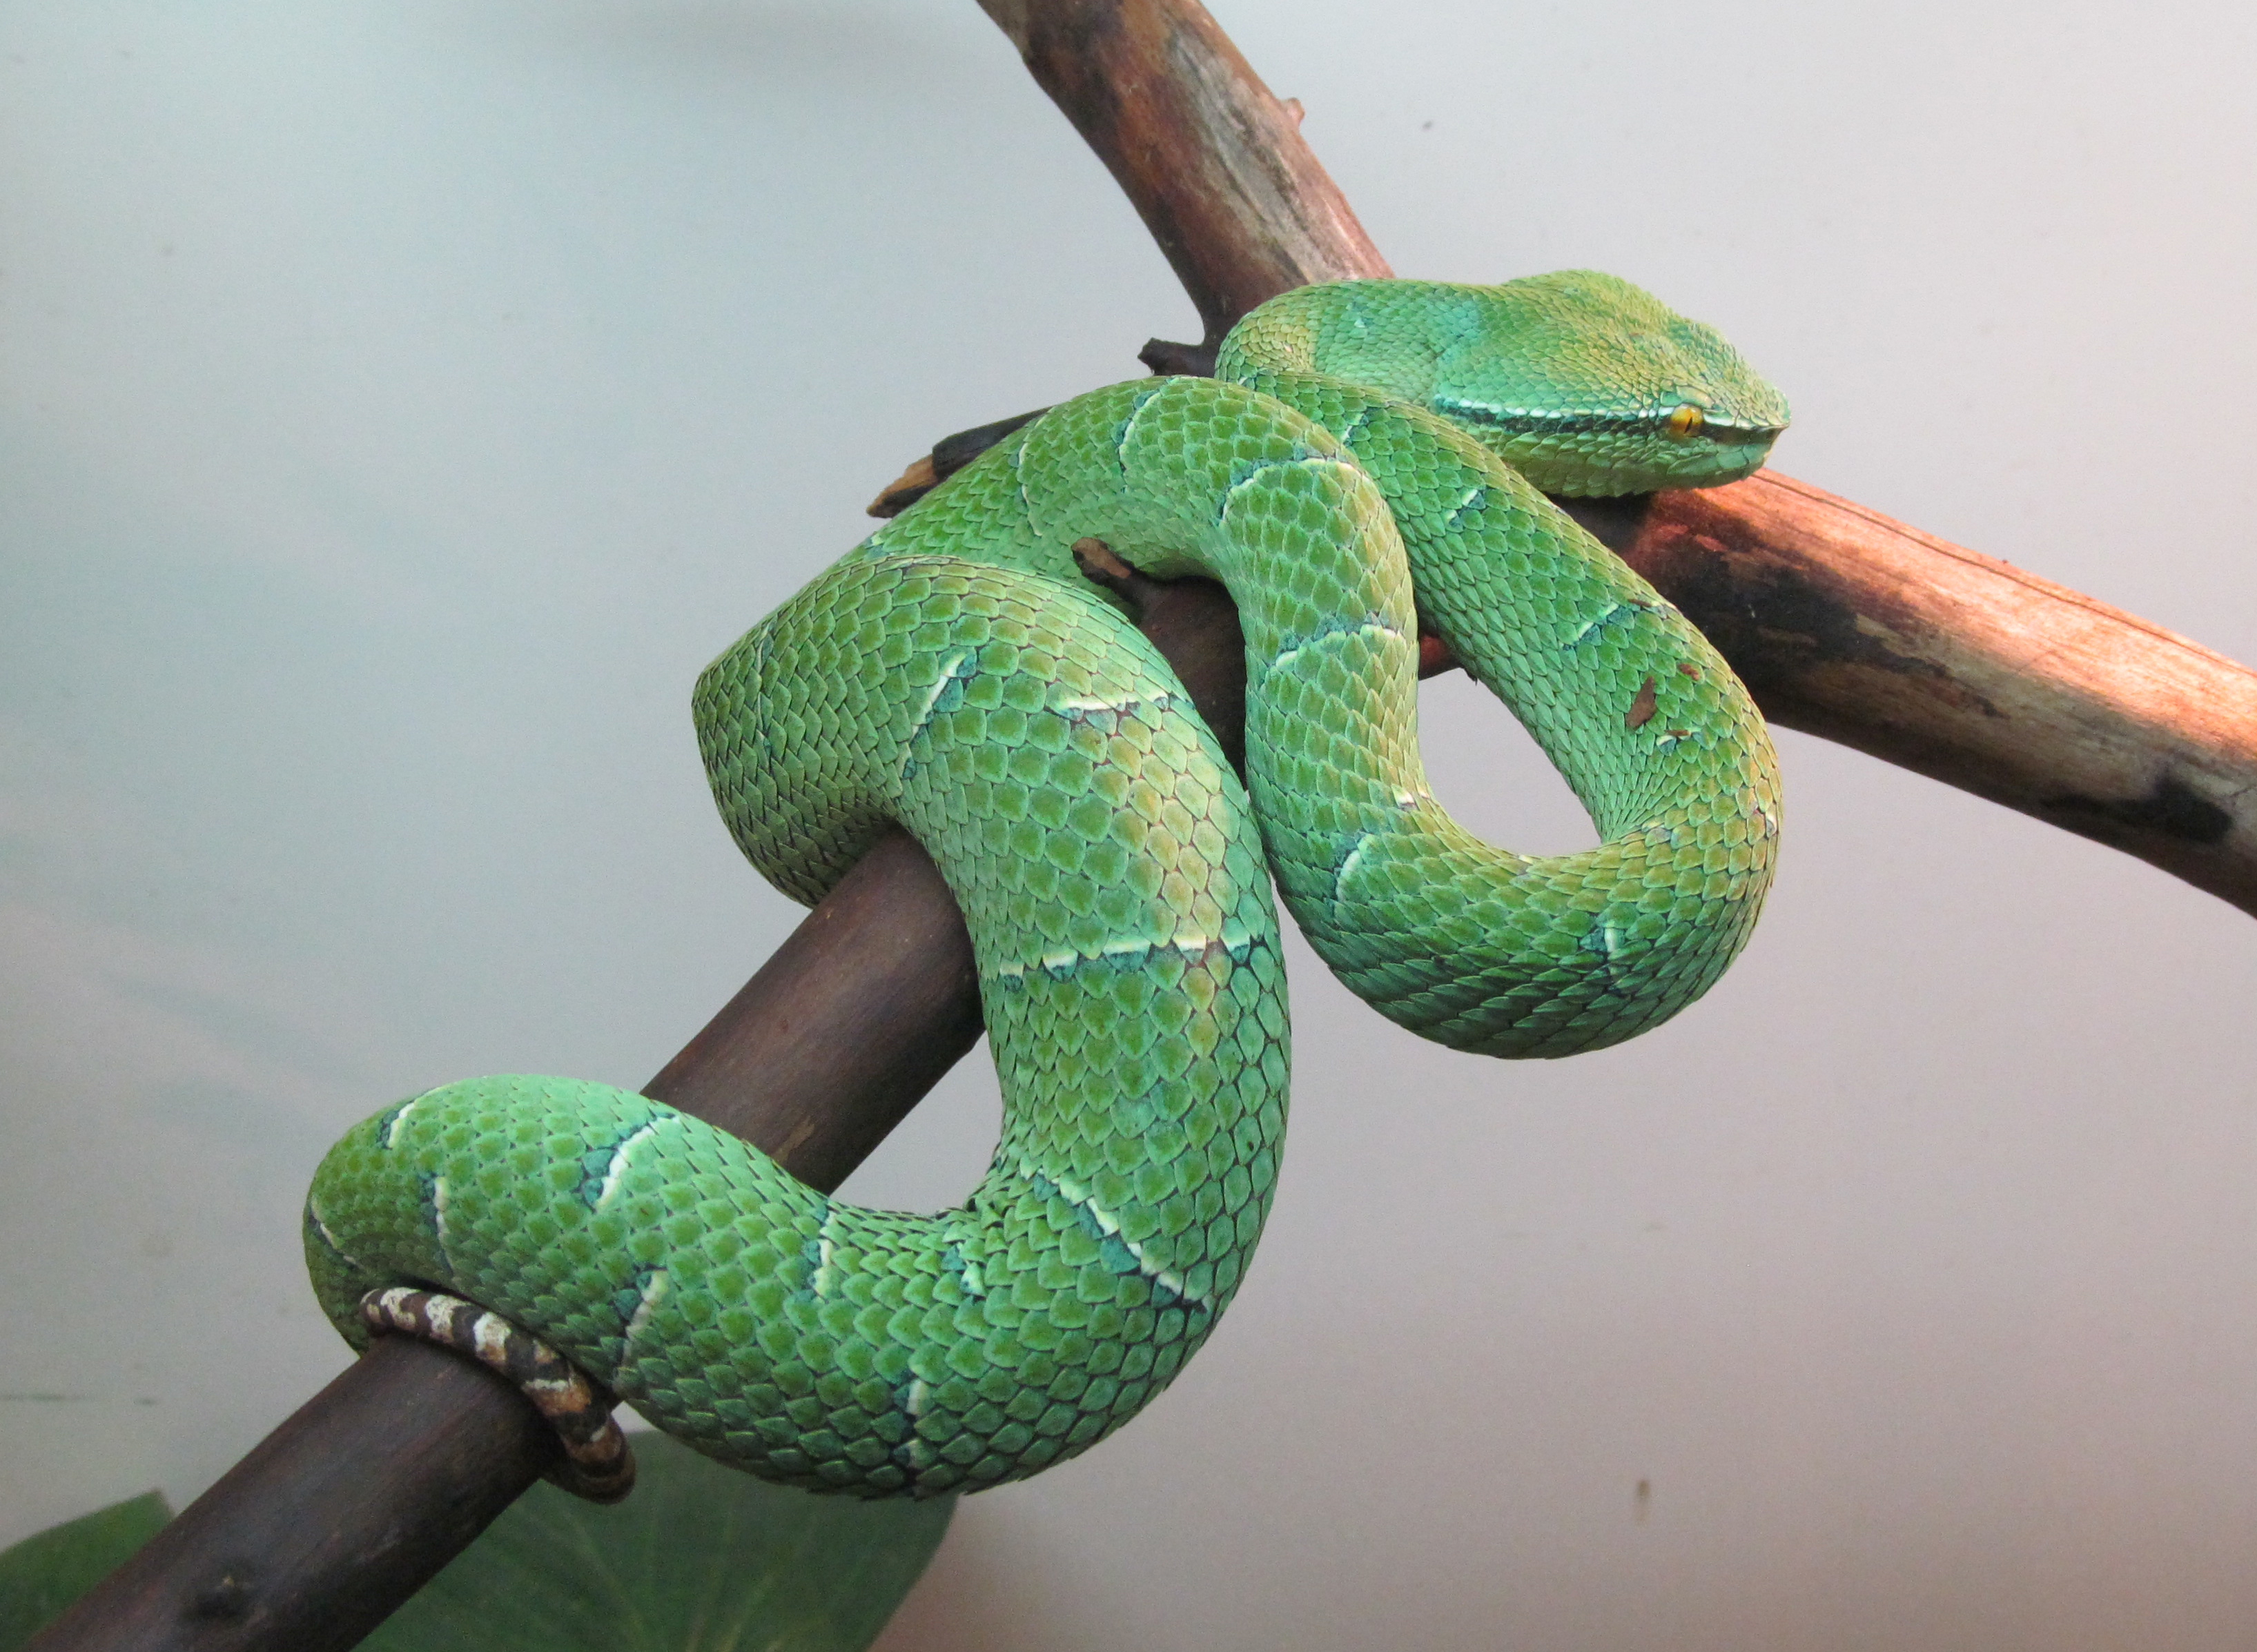 Image of Broad-banded Temple Pitviper